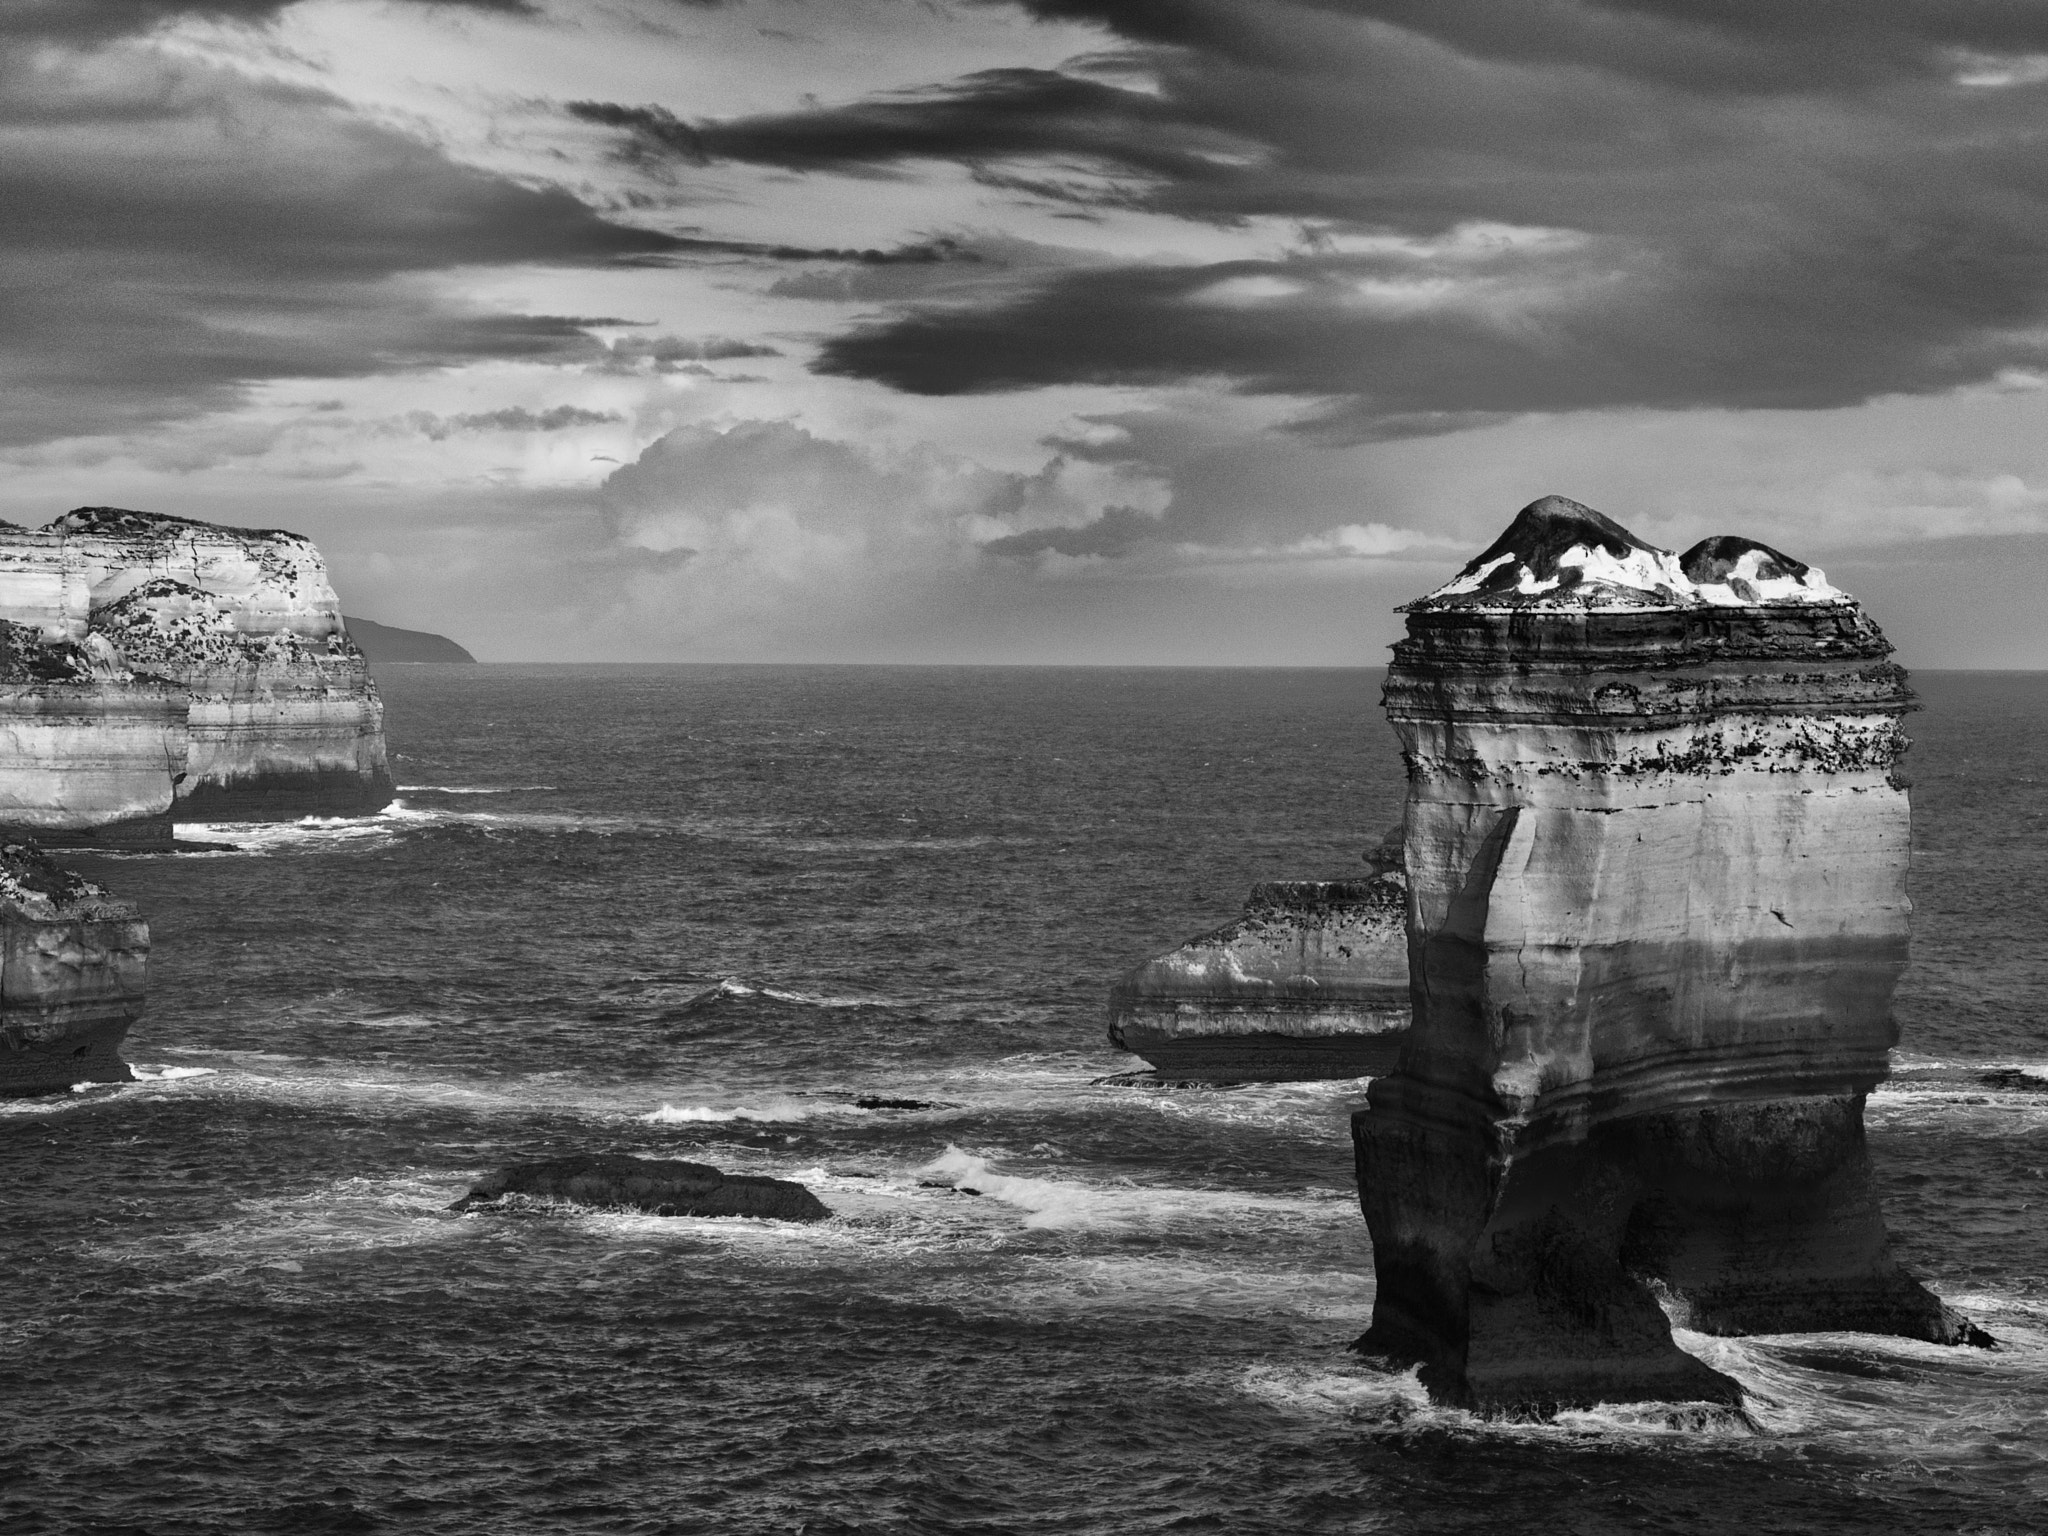 Photograph The Great Ocean Road by stefanocarda on 500px